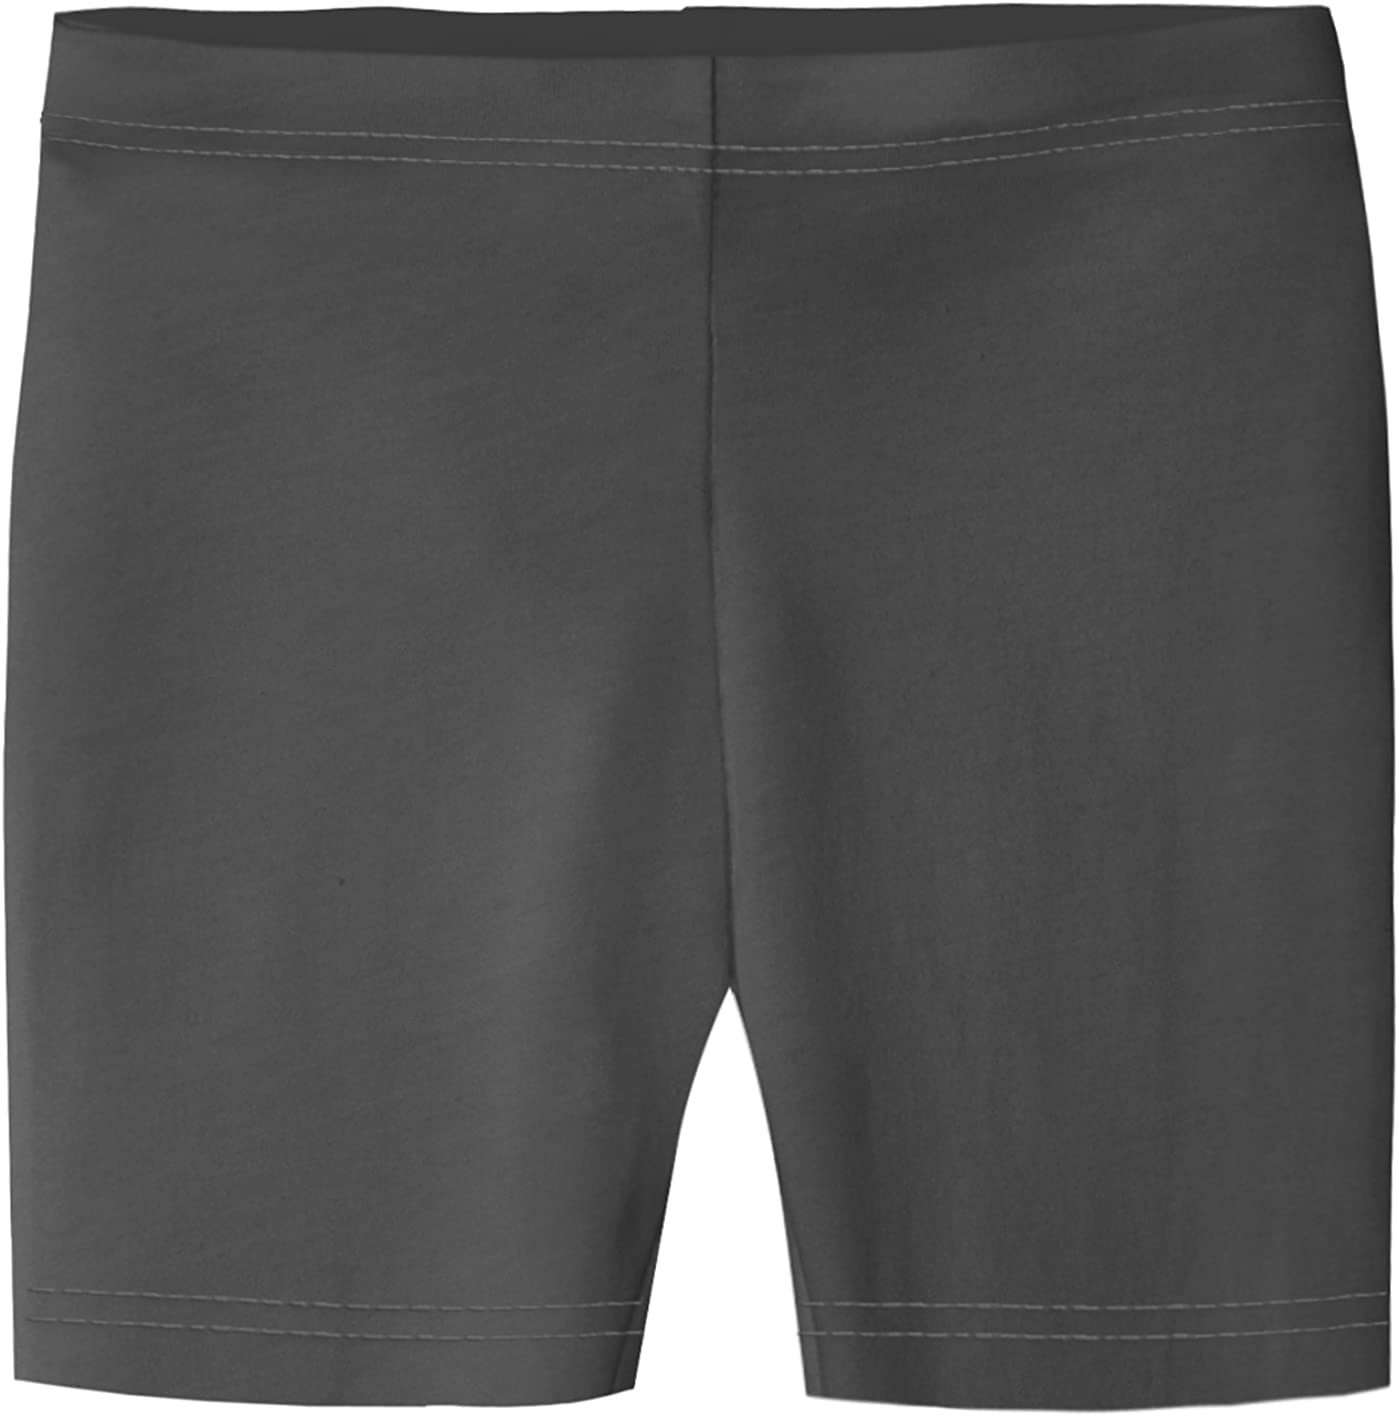 or Under Skirts Made in USA School Uniform City Threads Girls 100/% Cotton Bike Shorts for Sports